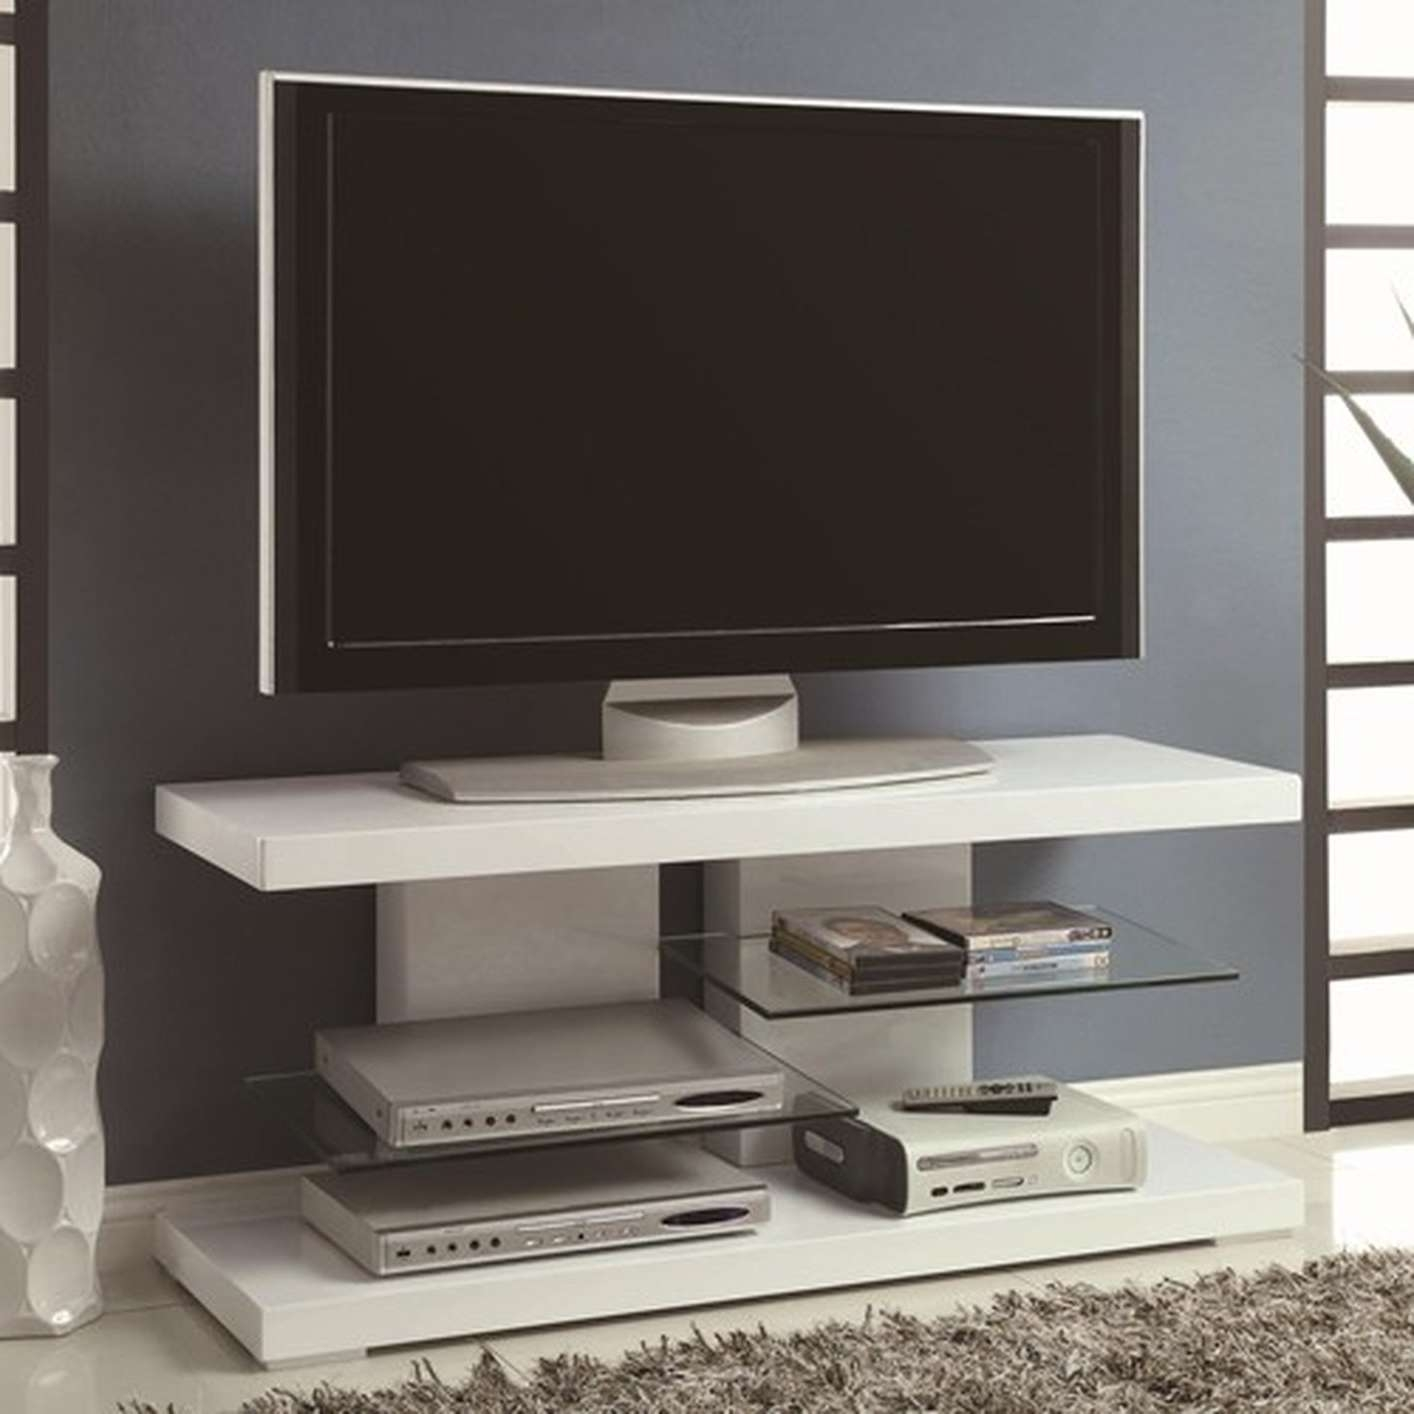 White Glass Tv Stand – Steal A Sofa Furniture Outlet Los Angeles Ca With Regard To Gloss White Tv Stands (View 14 of 15)